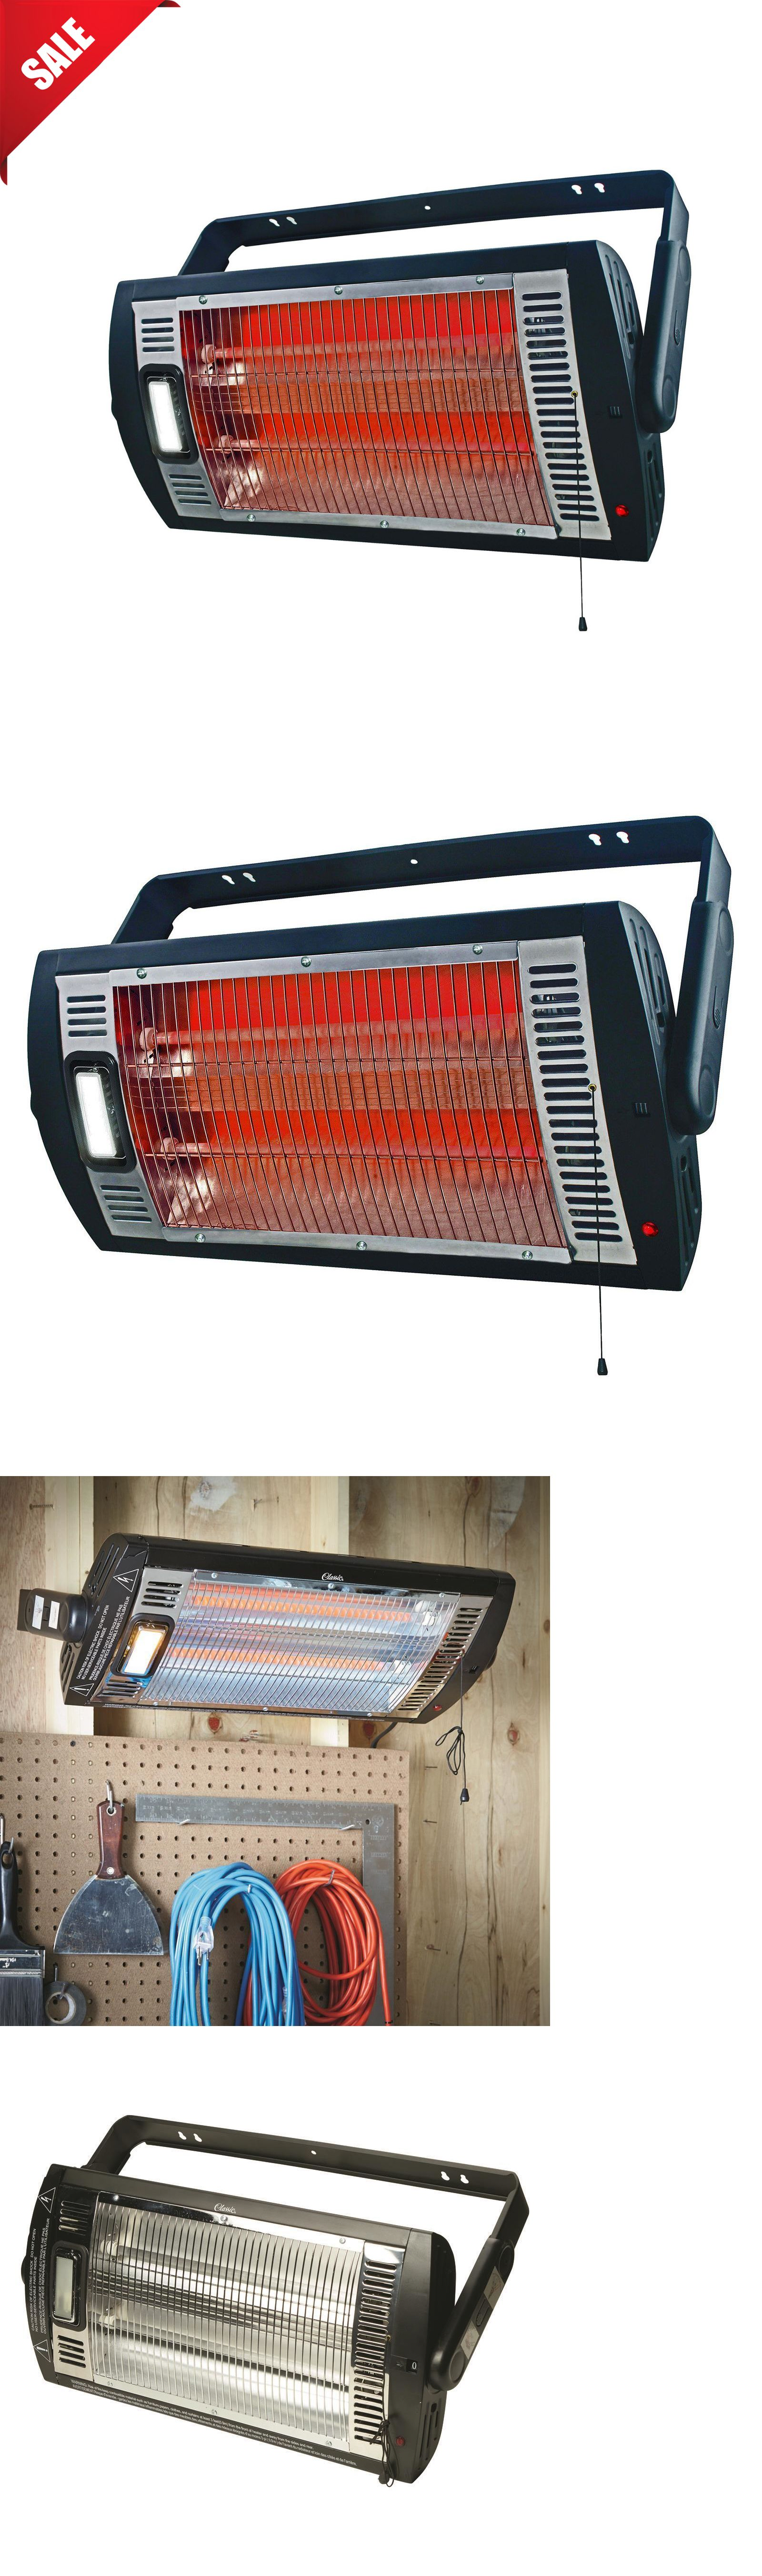 Air Conditioners and Heaters 185107 Electric Ceiling